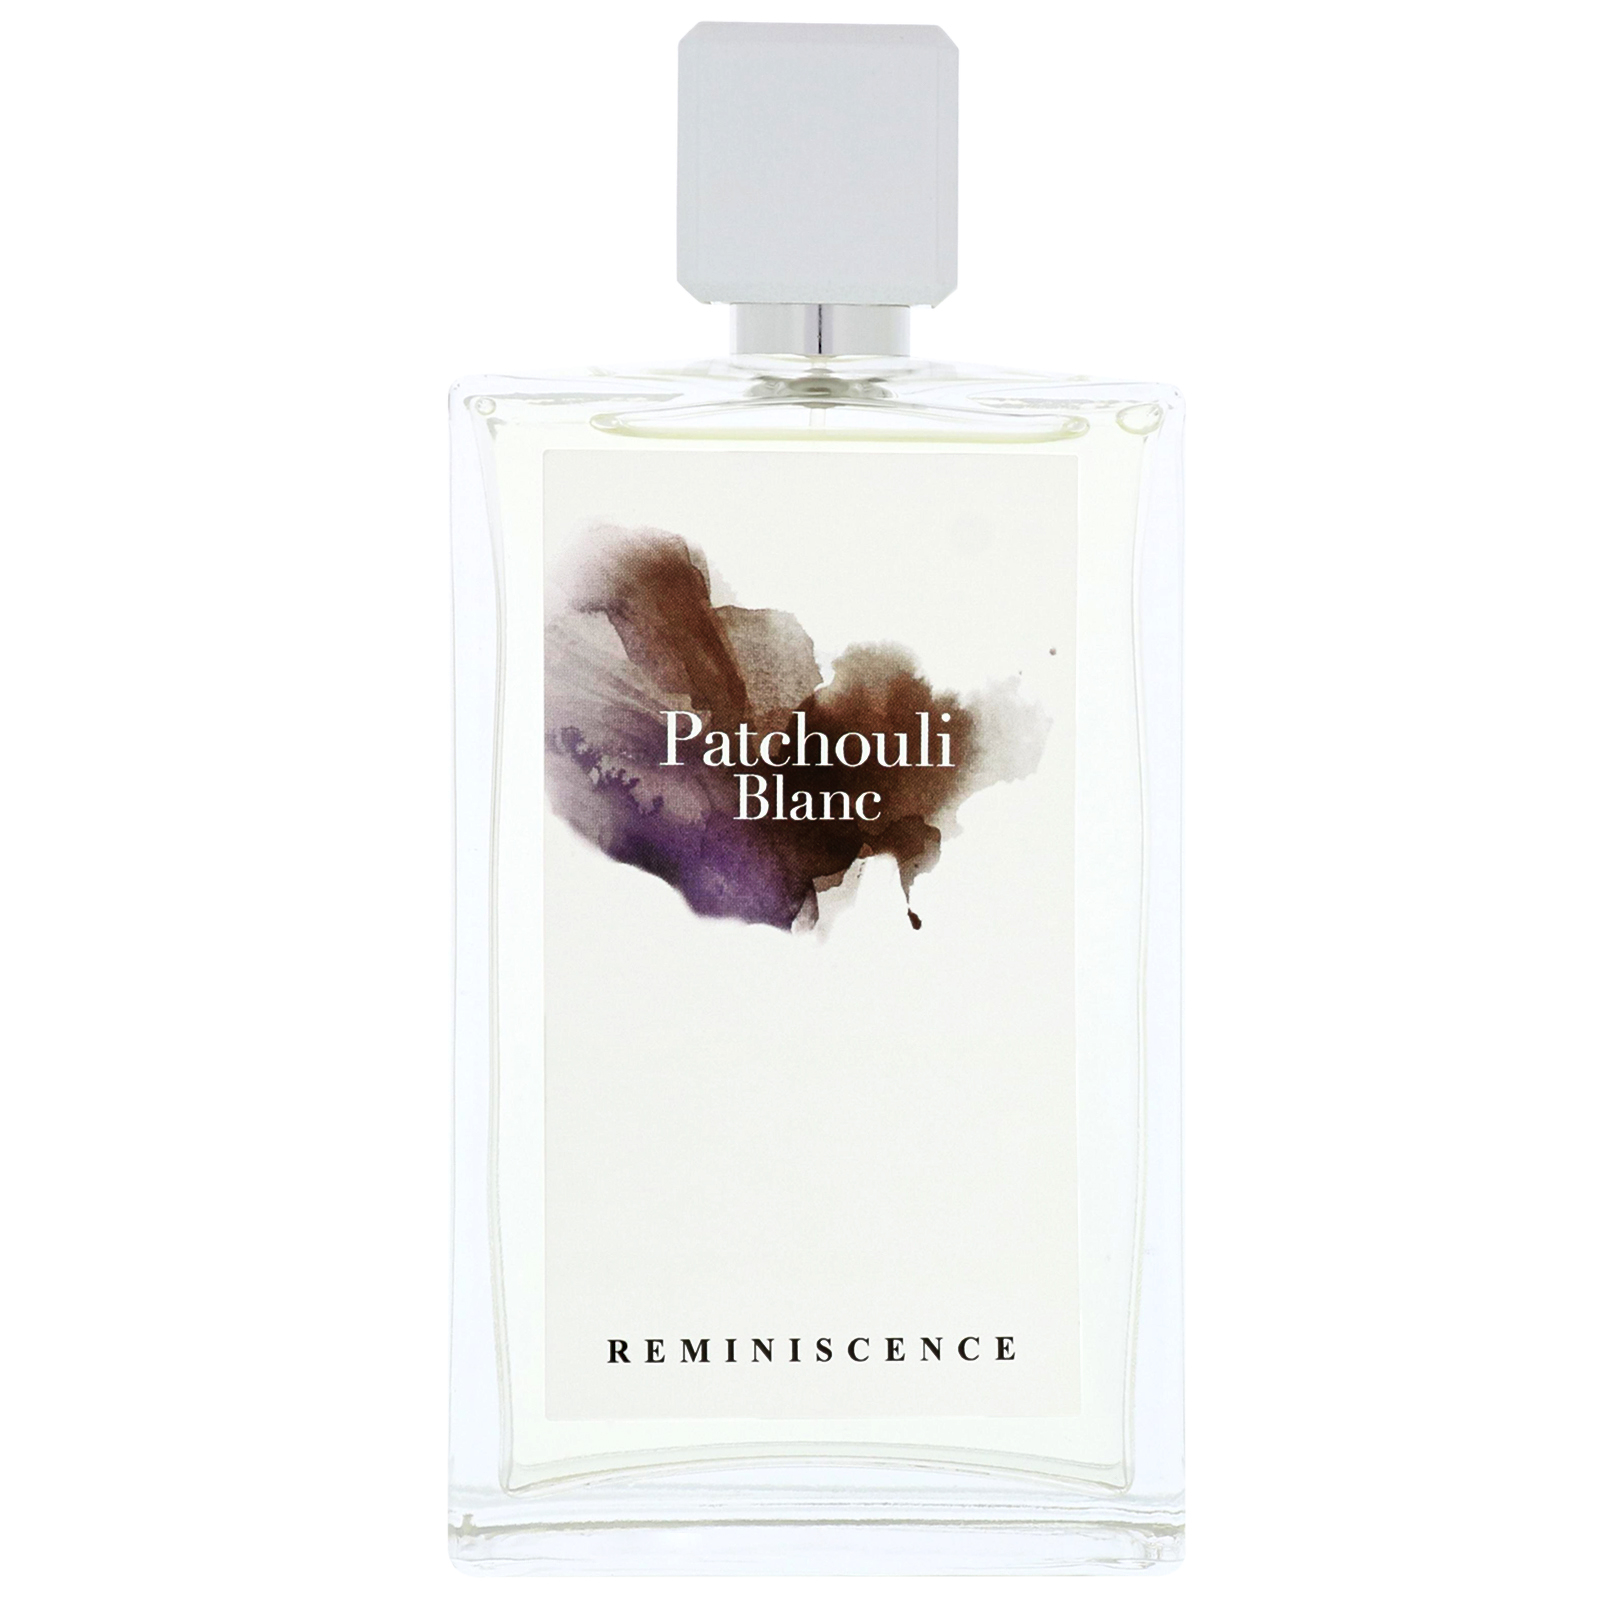 Reminiscence Patchouli Blanc Eau de Parfum Spray 100ml